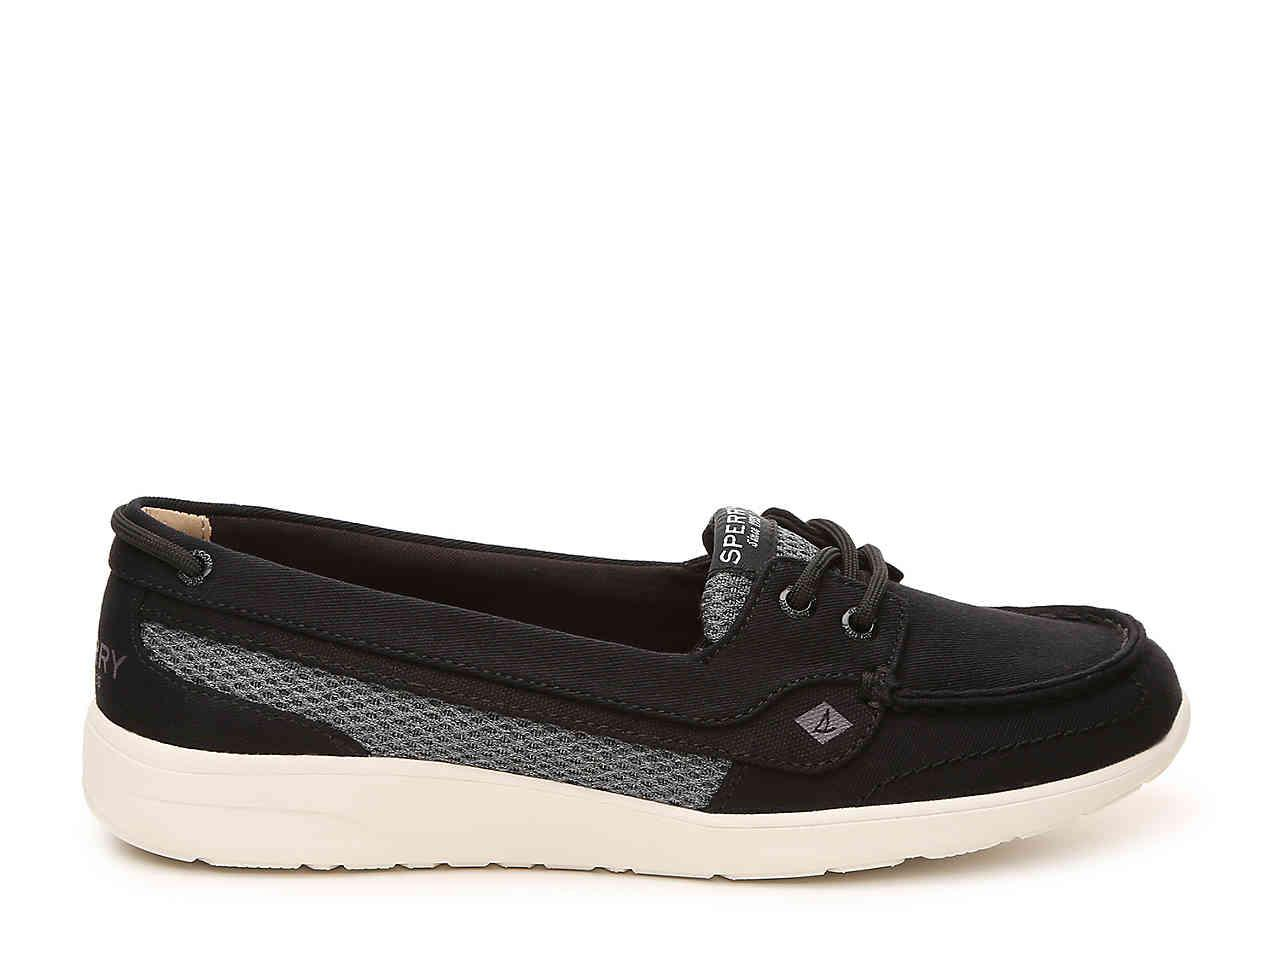 Sperry Top-Sider Canvas Rio Point Boat